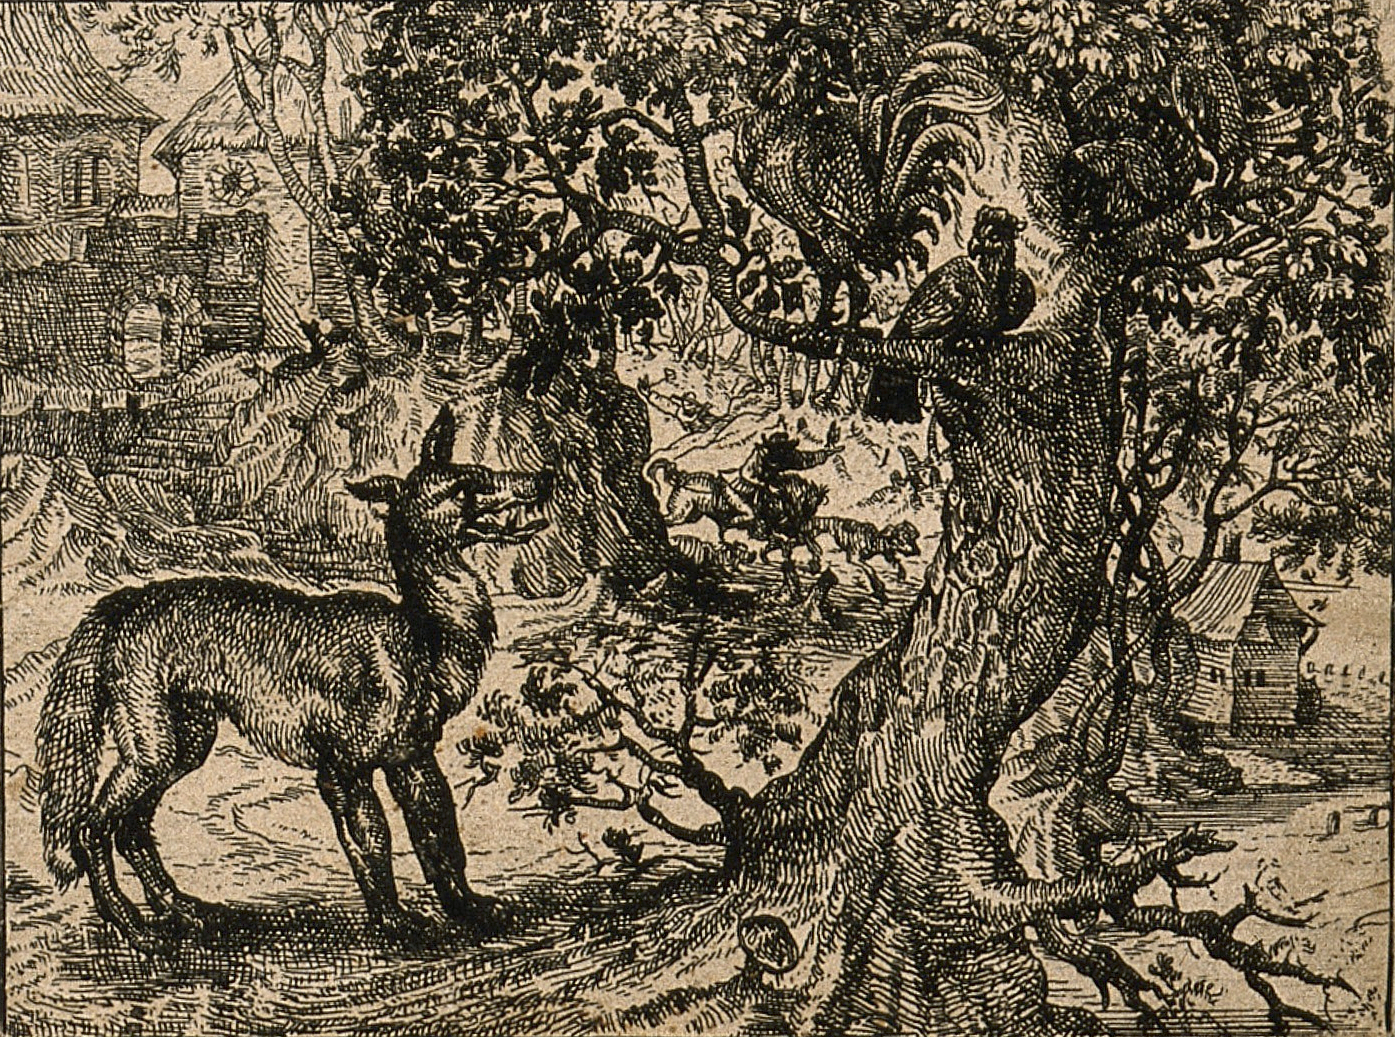 'A wily fox tries to talk a chicken down from a tree in one of Aesop's fables about false friendship' Credit: Wellcome Library, London.